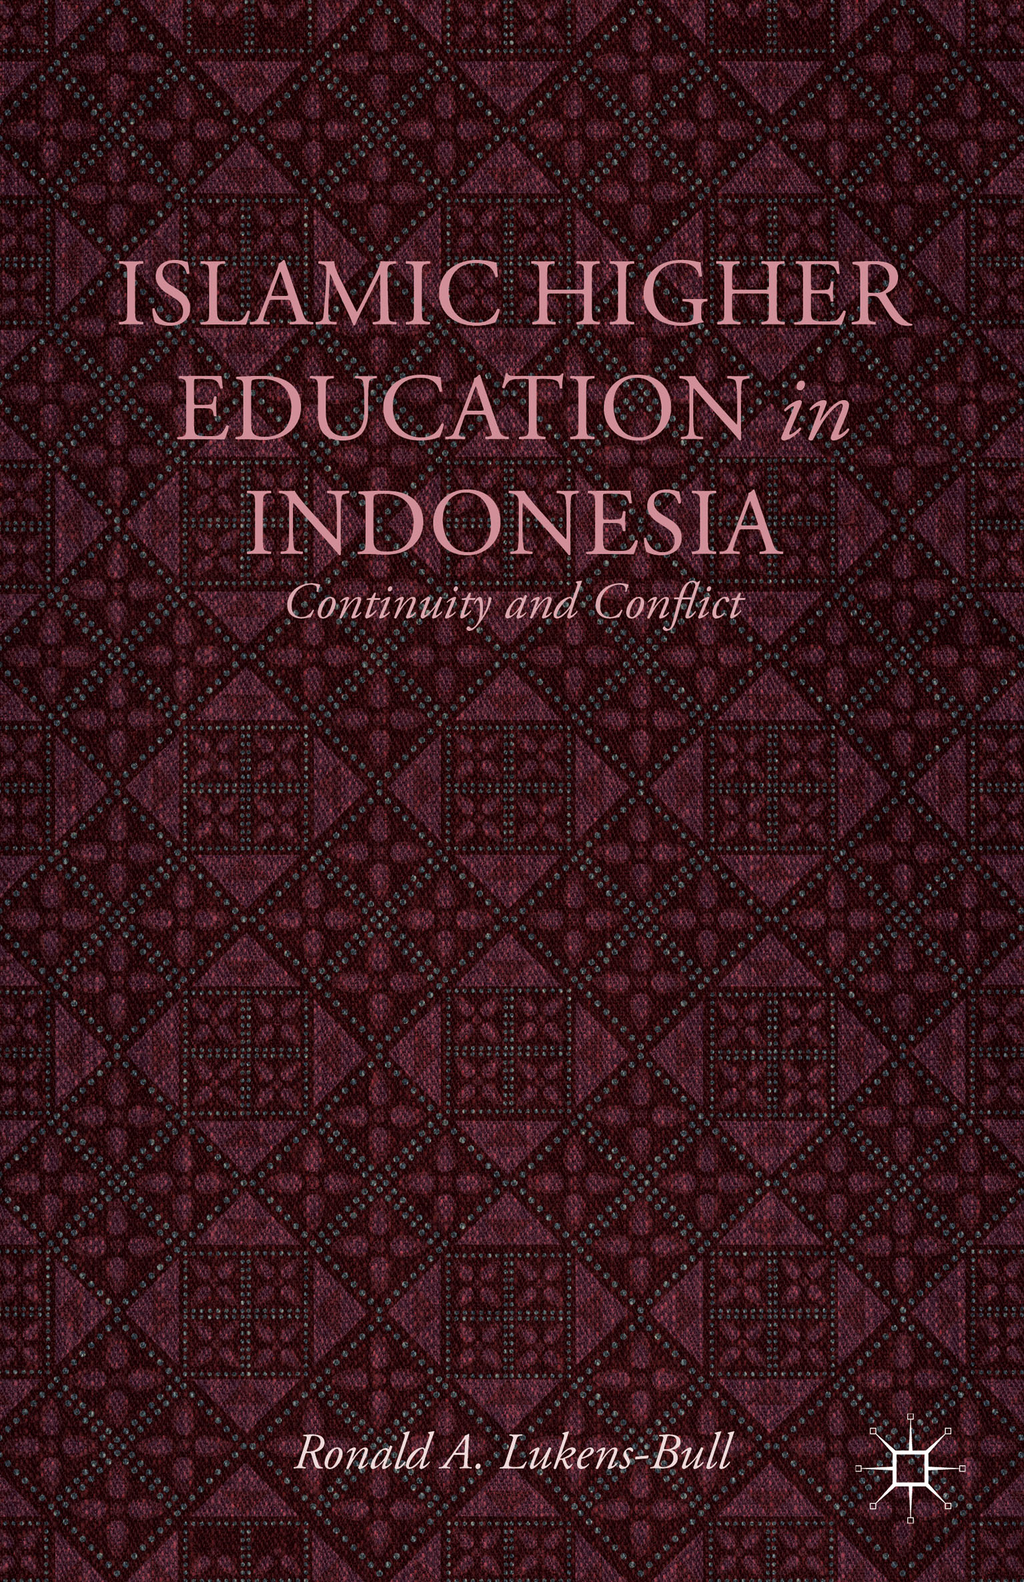 Islamic Higher Education in Indonesia Continuity and Conflict